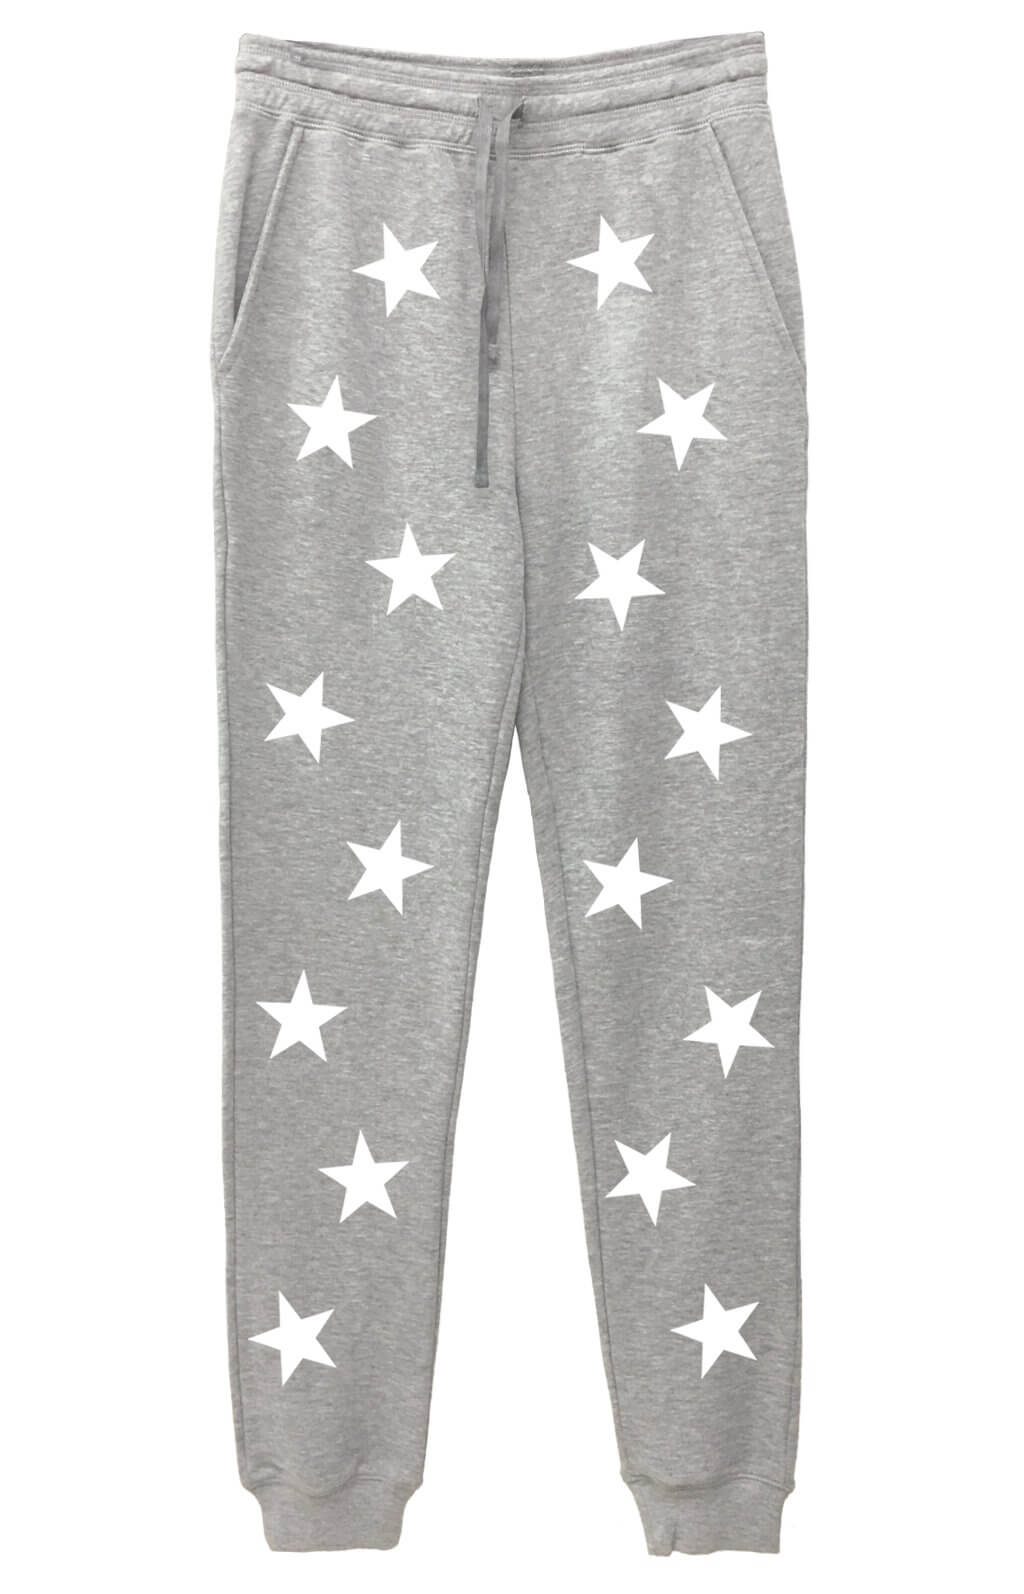 Lucy - Sweatpant - Super Star